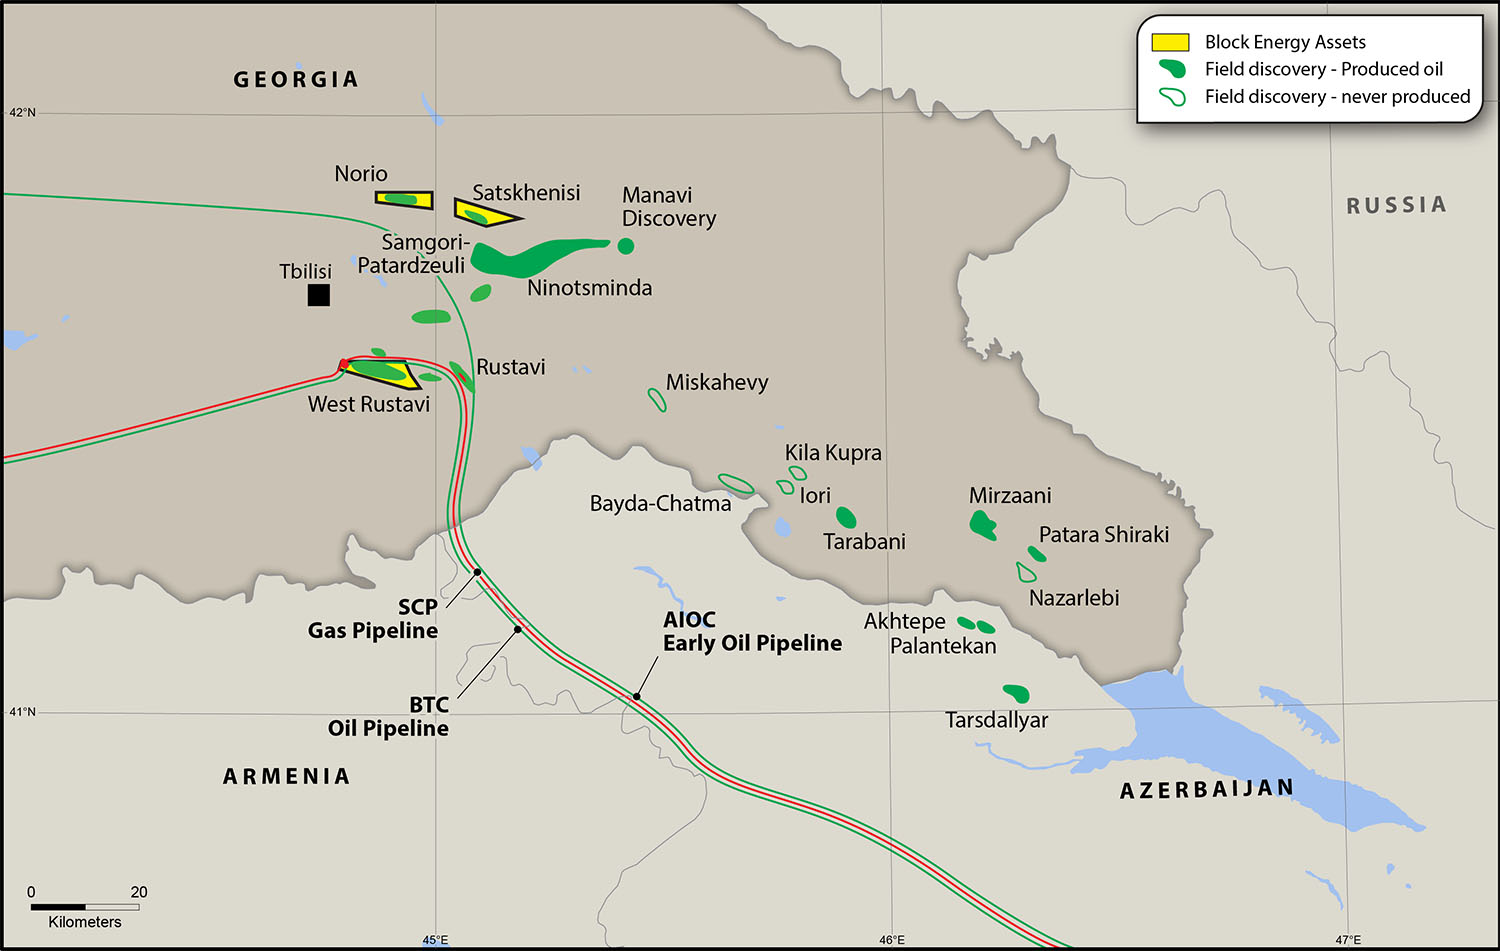 Oil and gas pipelines running through Georgia